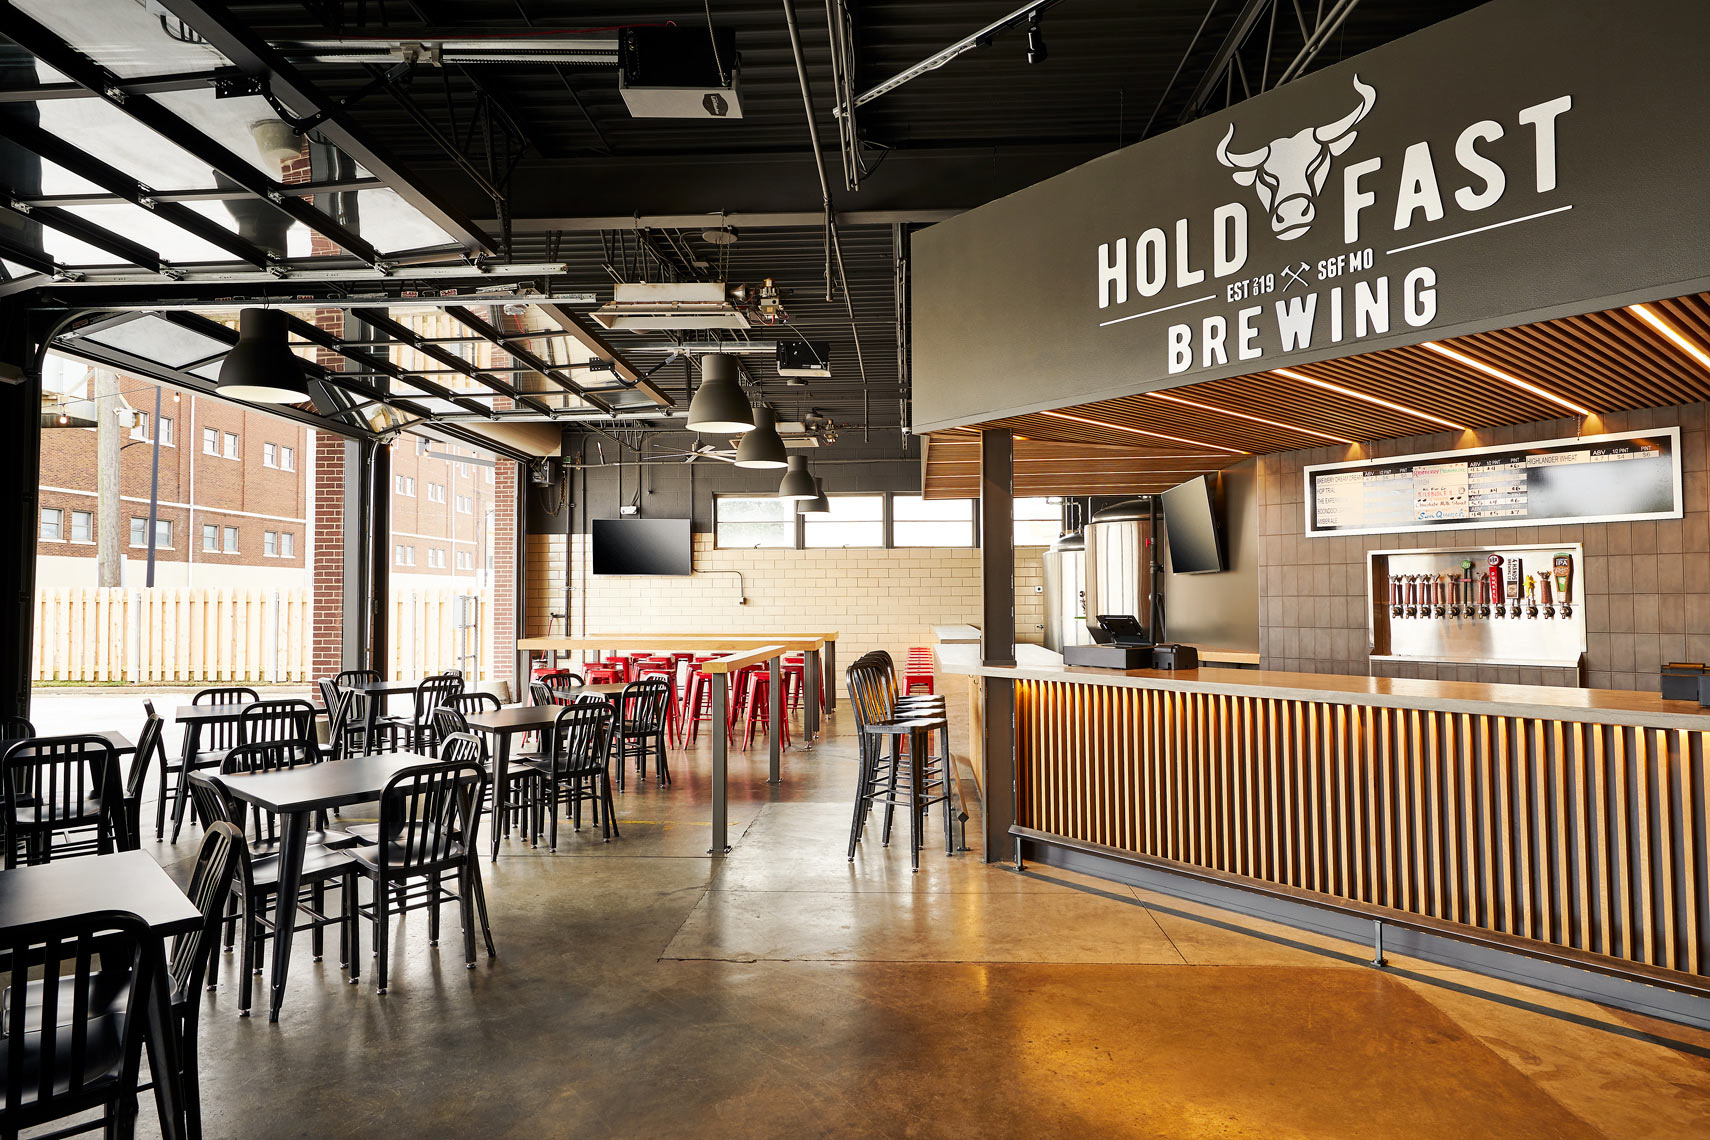 10_15_19-HoldFastBrewing-006